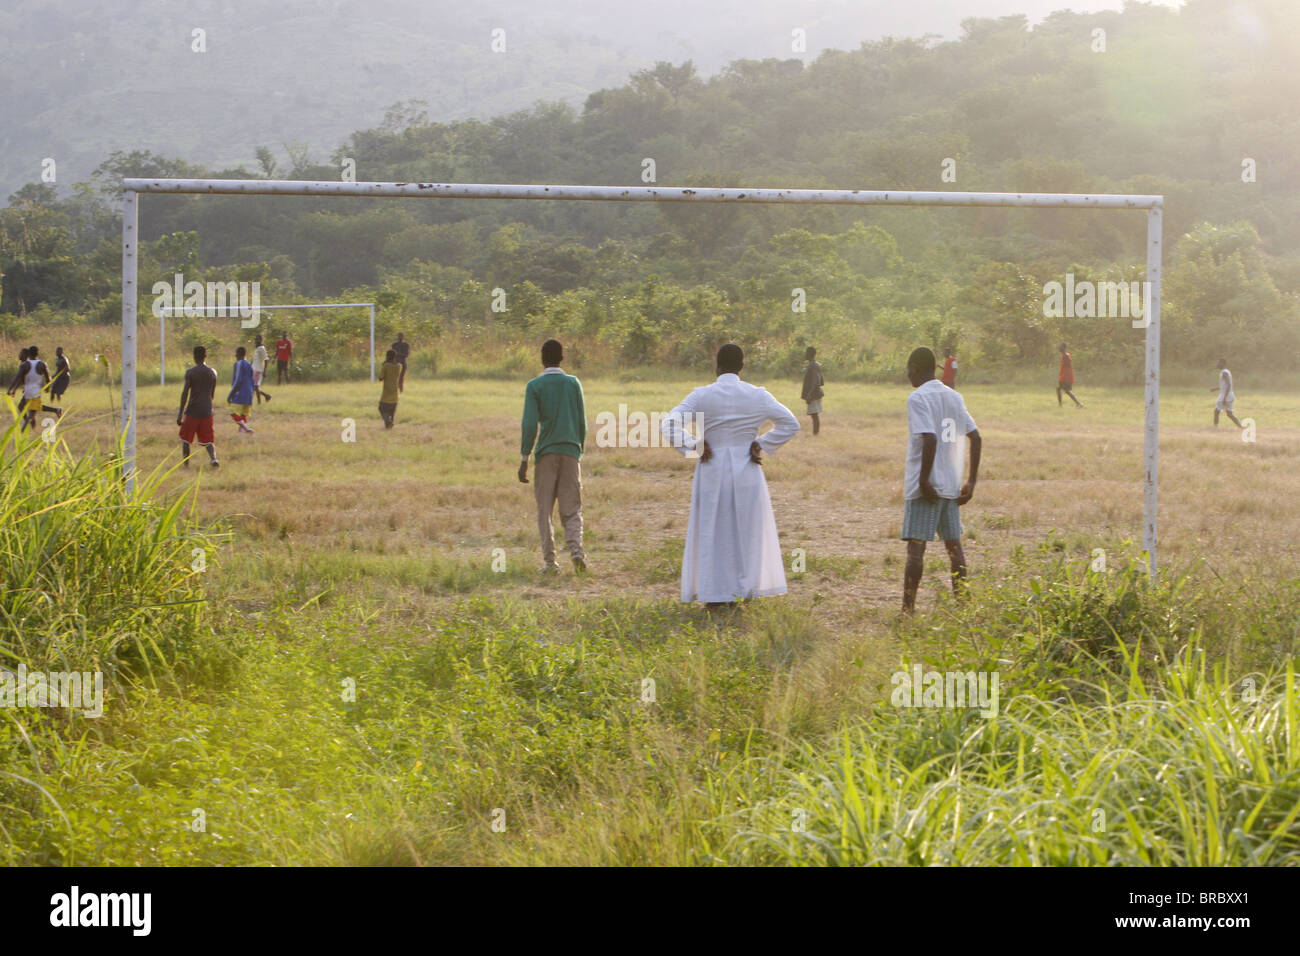 Catholic priest watching a soccer game, Akata Djokpe, Togo, West Africa Stock Photo